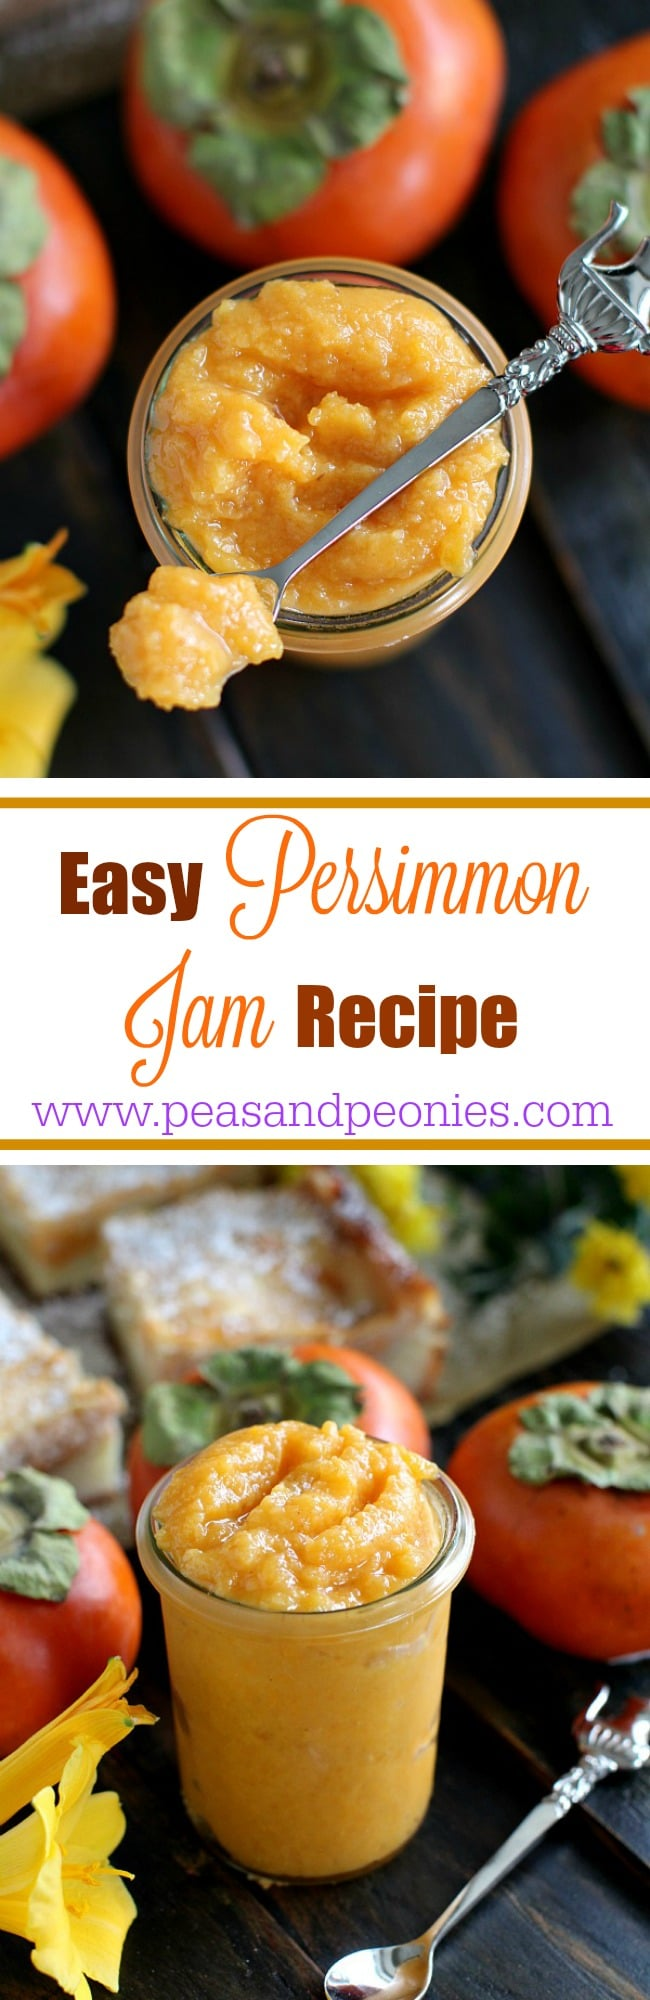 picture of persimmon jam for pinterest